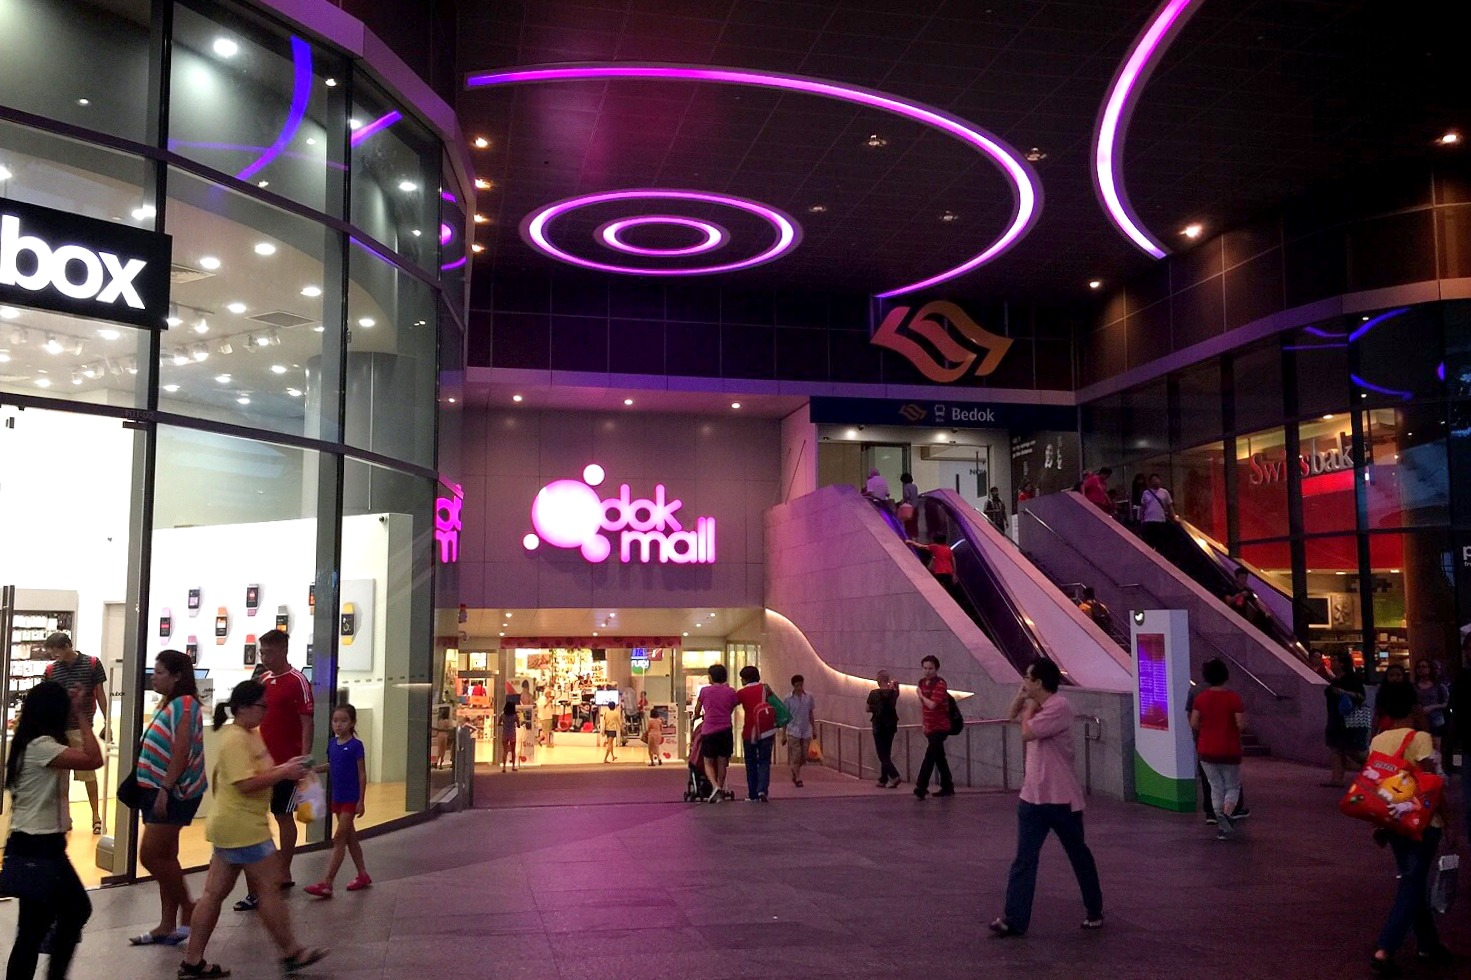 Bedok Mall and Bedok Point are two malls which serves the residents in the area